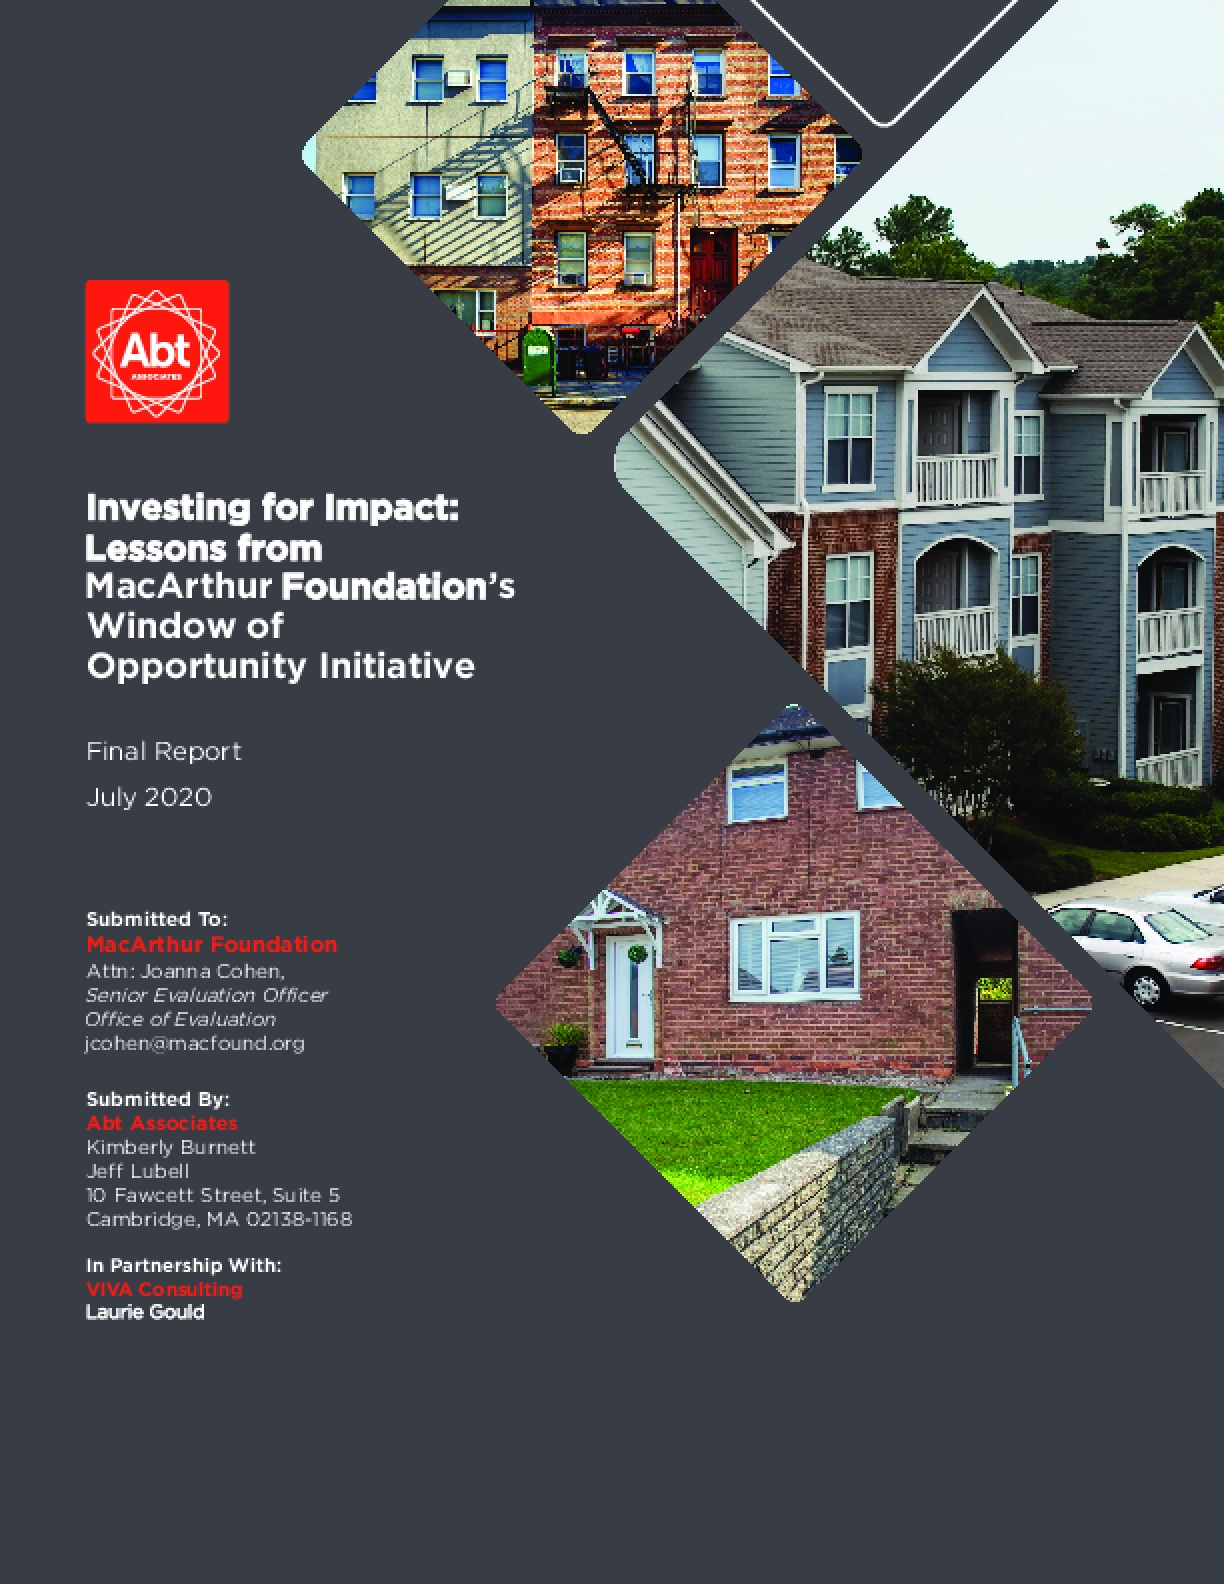 Investing for Impact: Lessons from MacArthur Foundation's Window of Opportunity Initiative